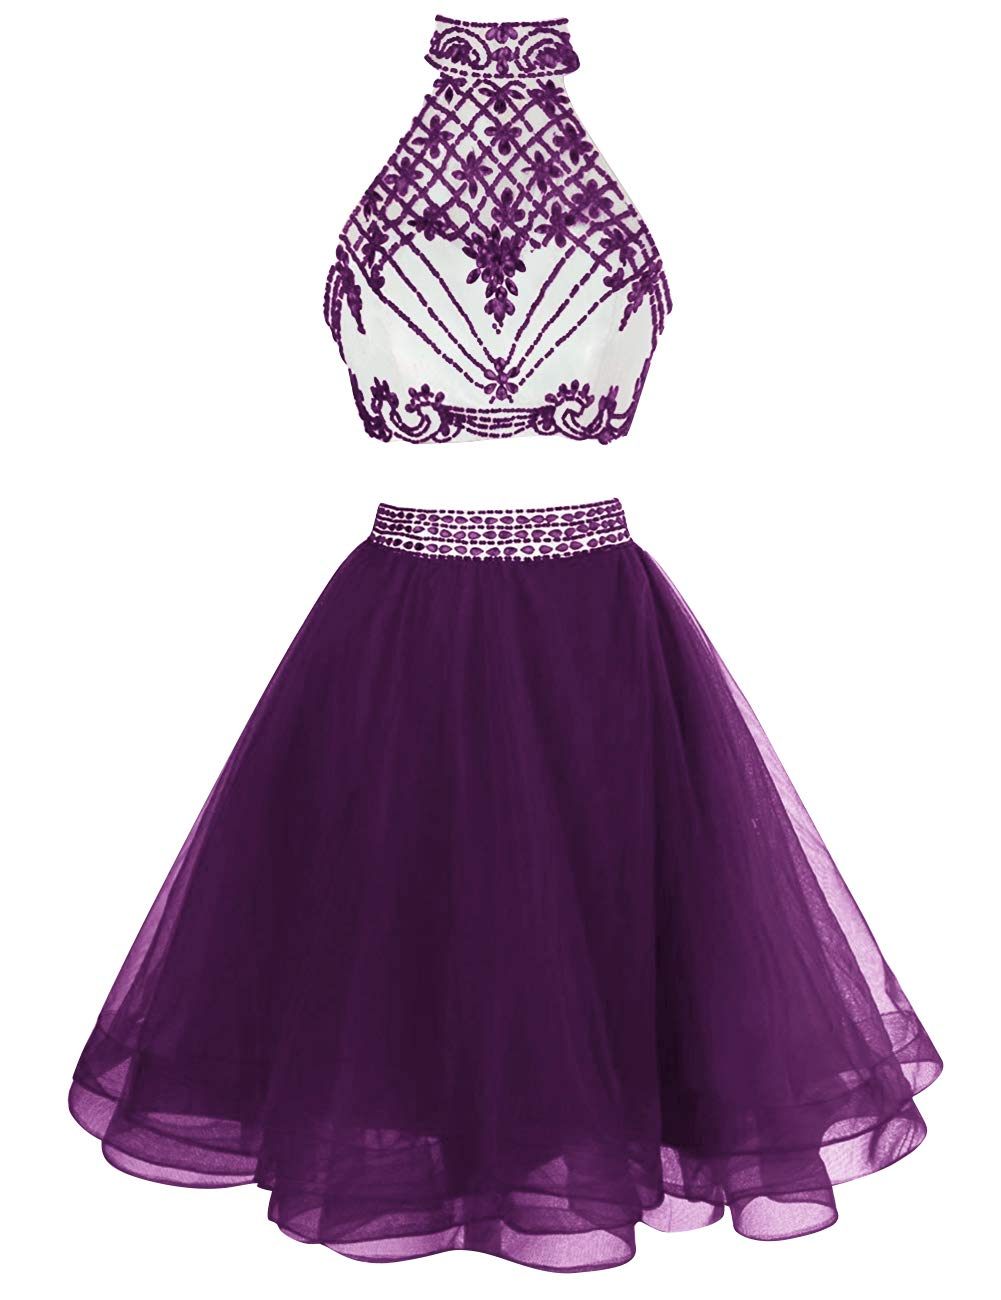 Homecoming Dresses Halter Cocktail Dress Short Homecoming Gown Eggplant 14